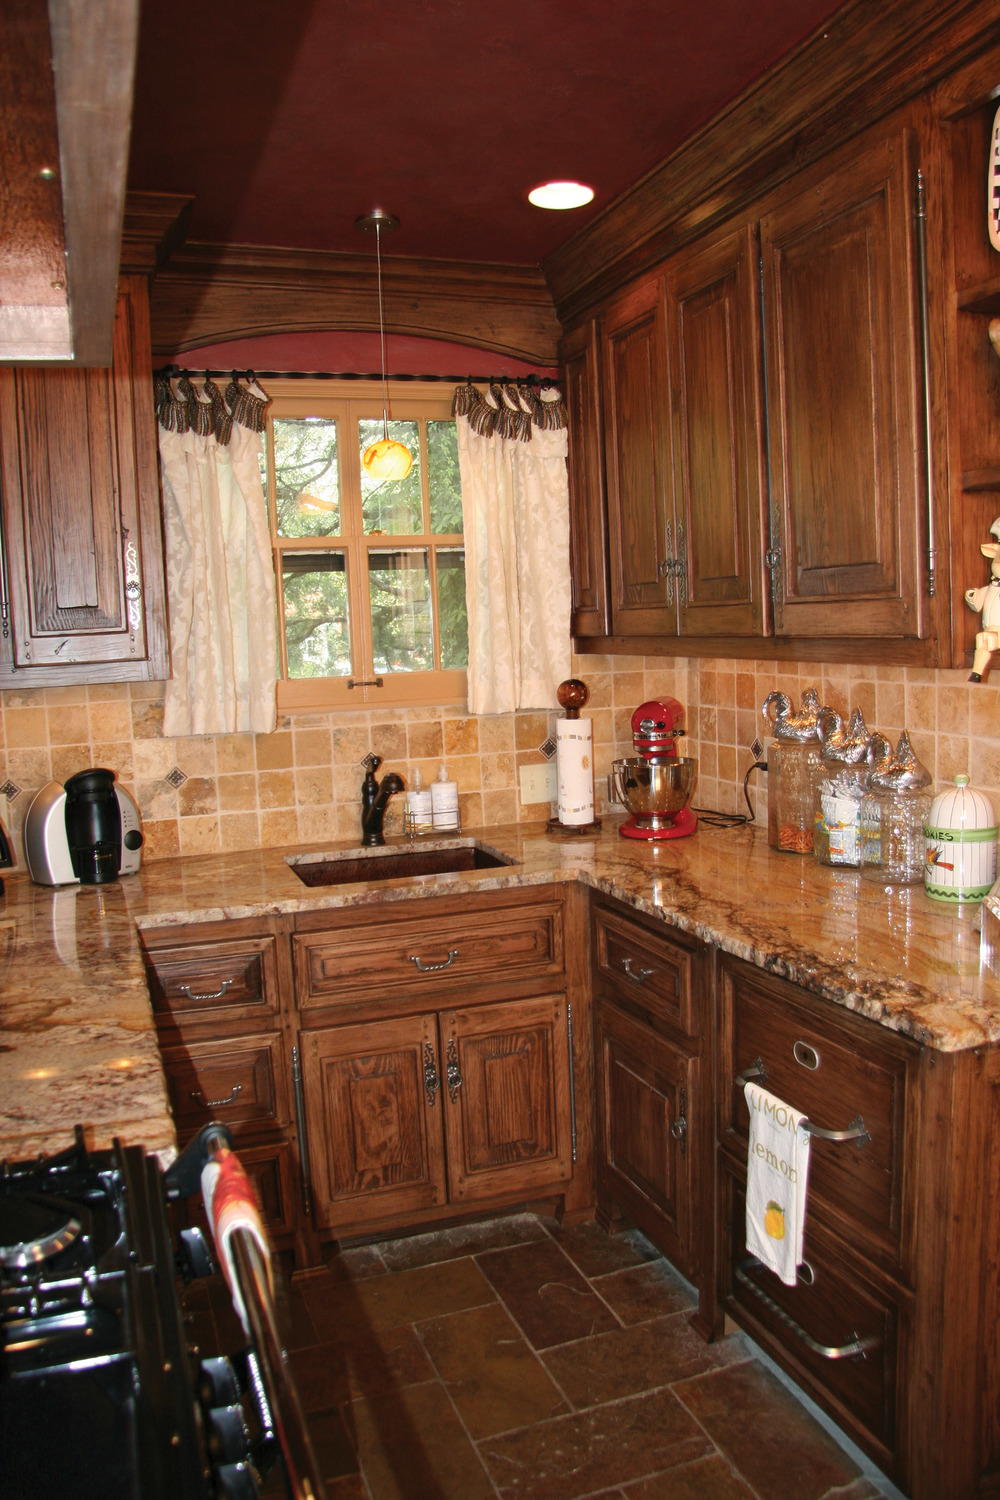 Old World Rustic Kitchen.jpg